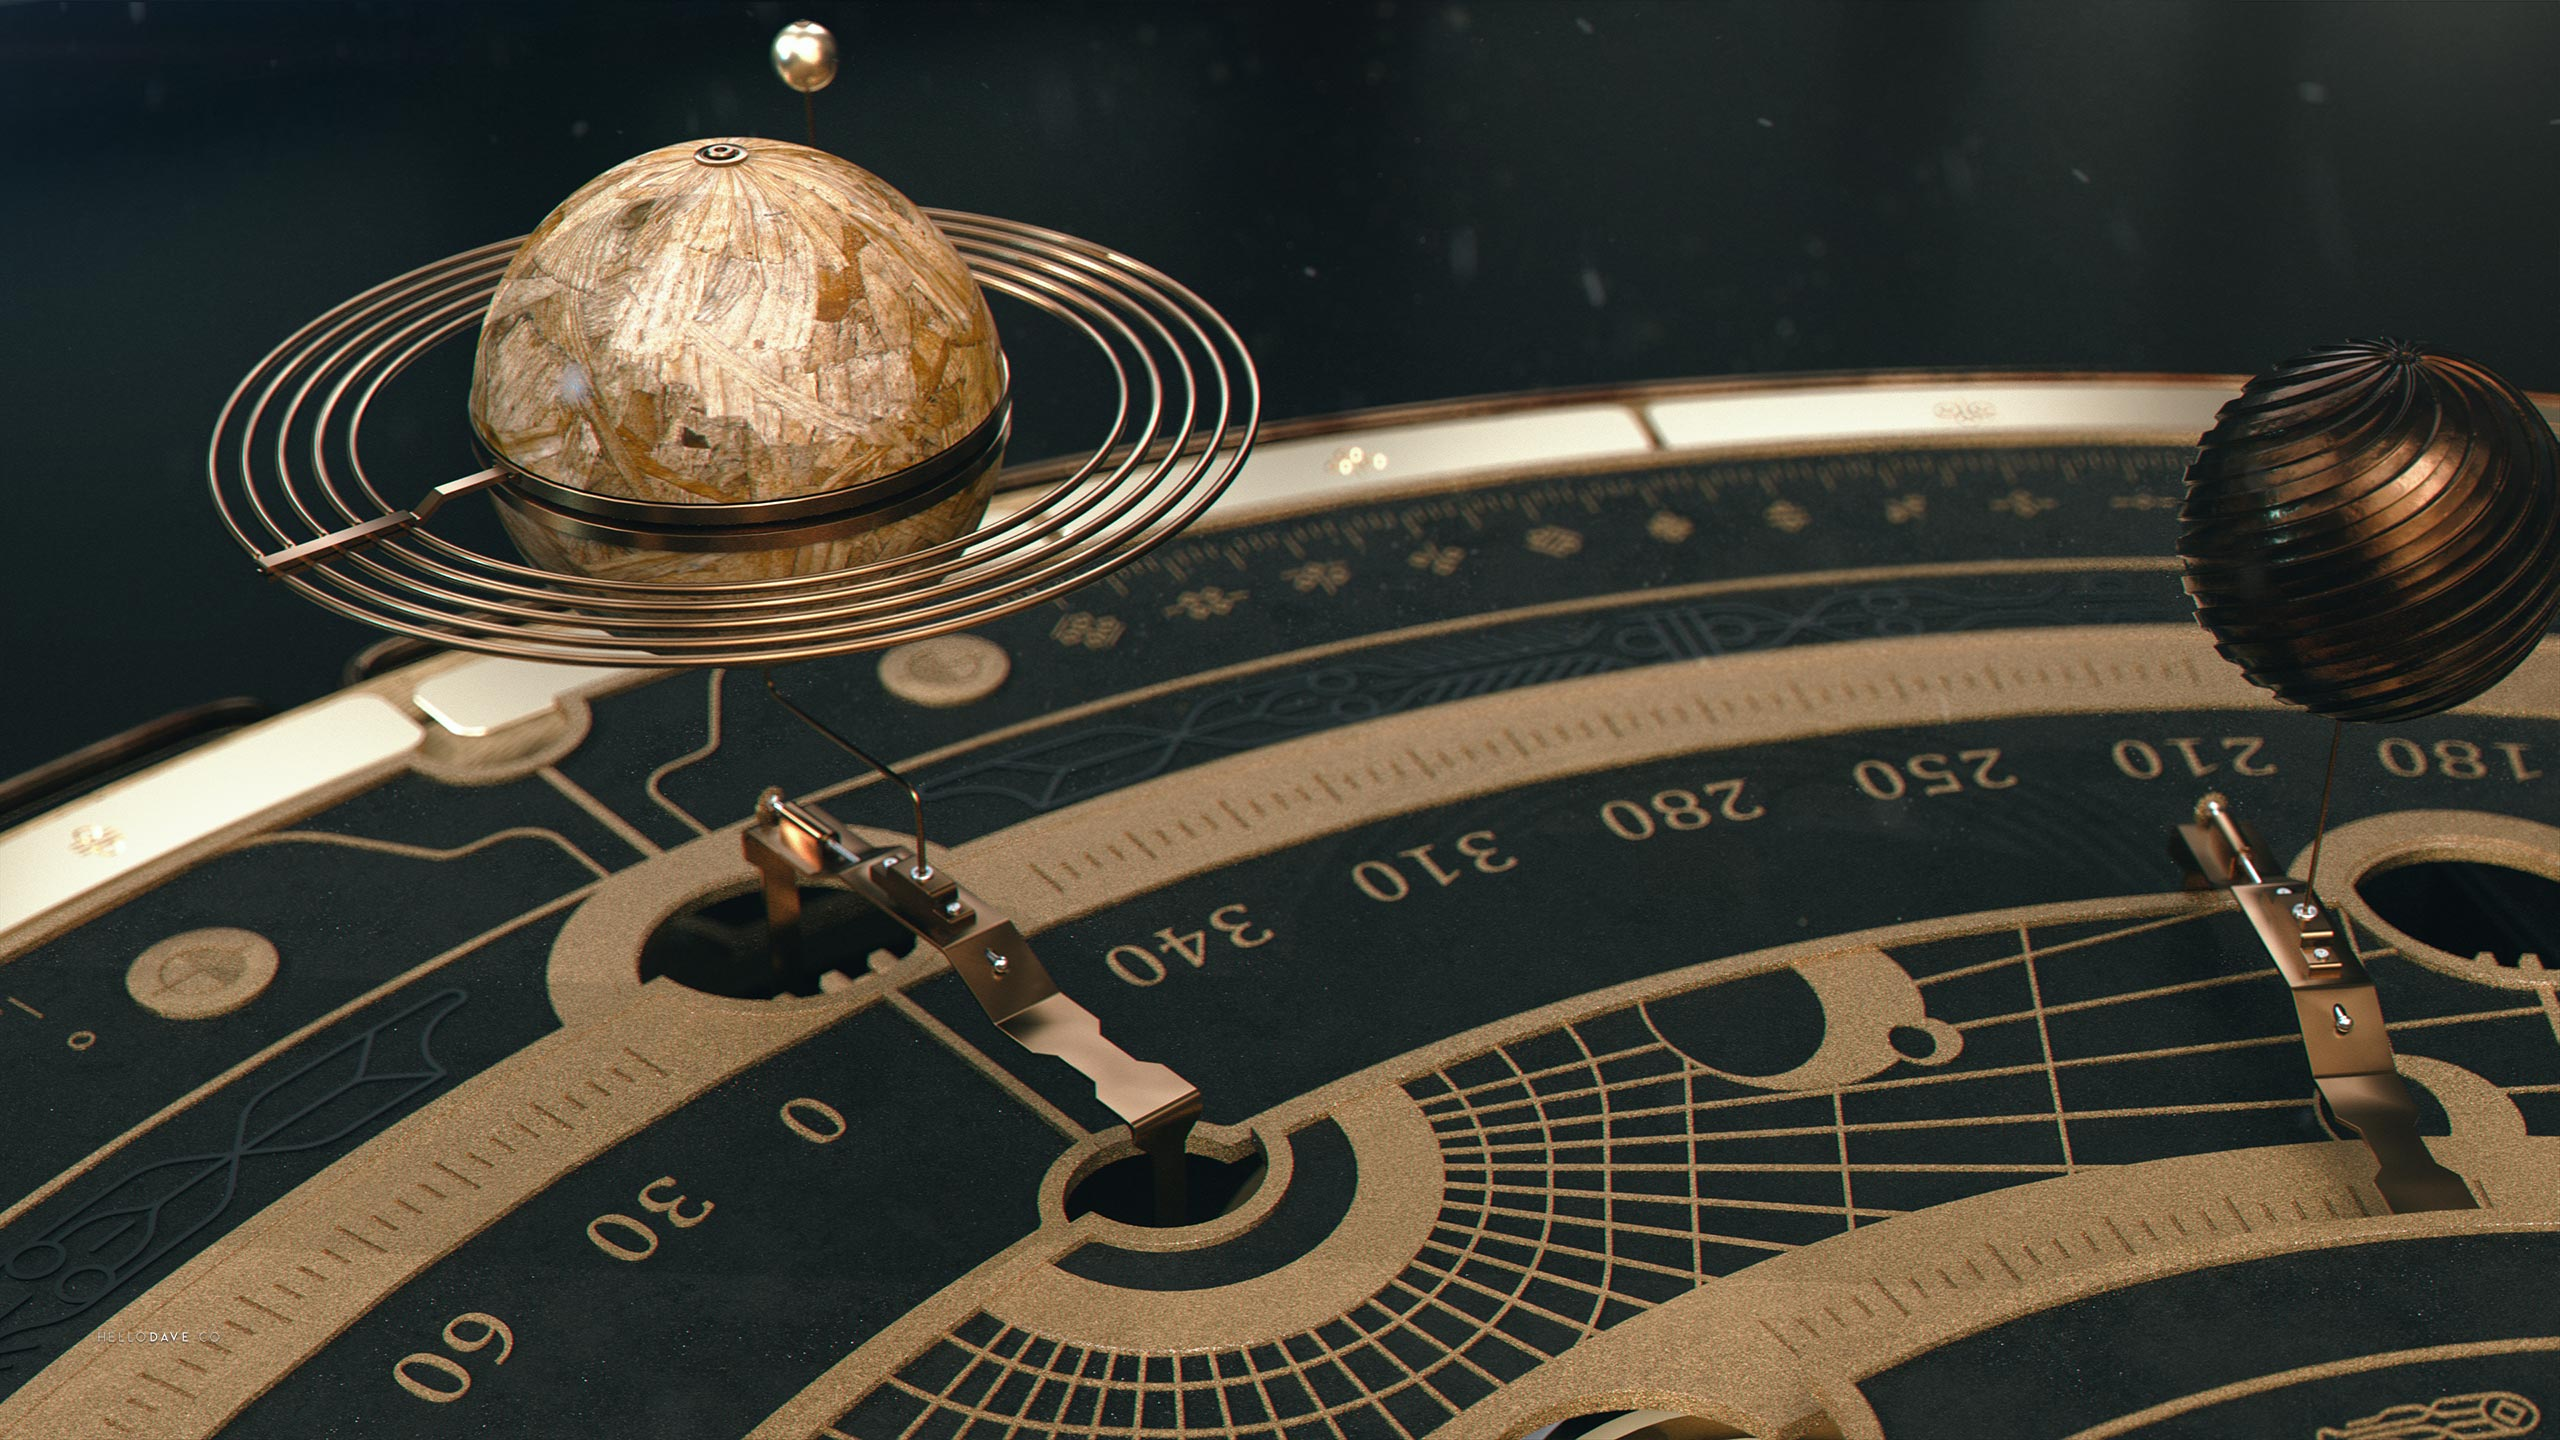 Steampunk_table_astrolabe_02_2K